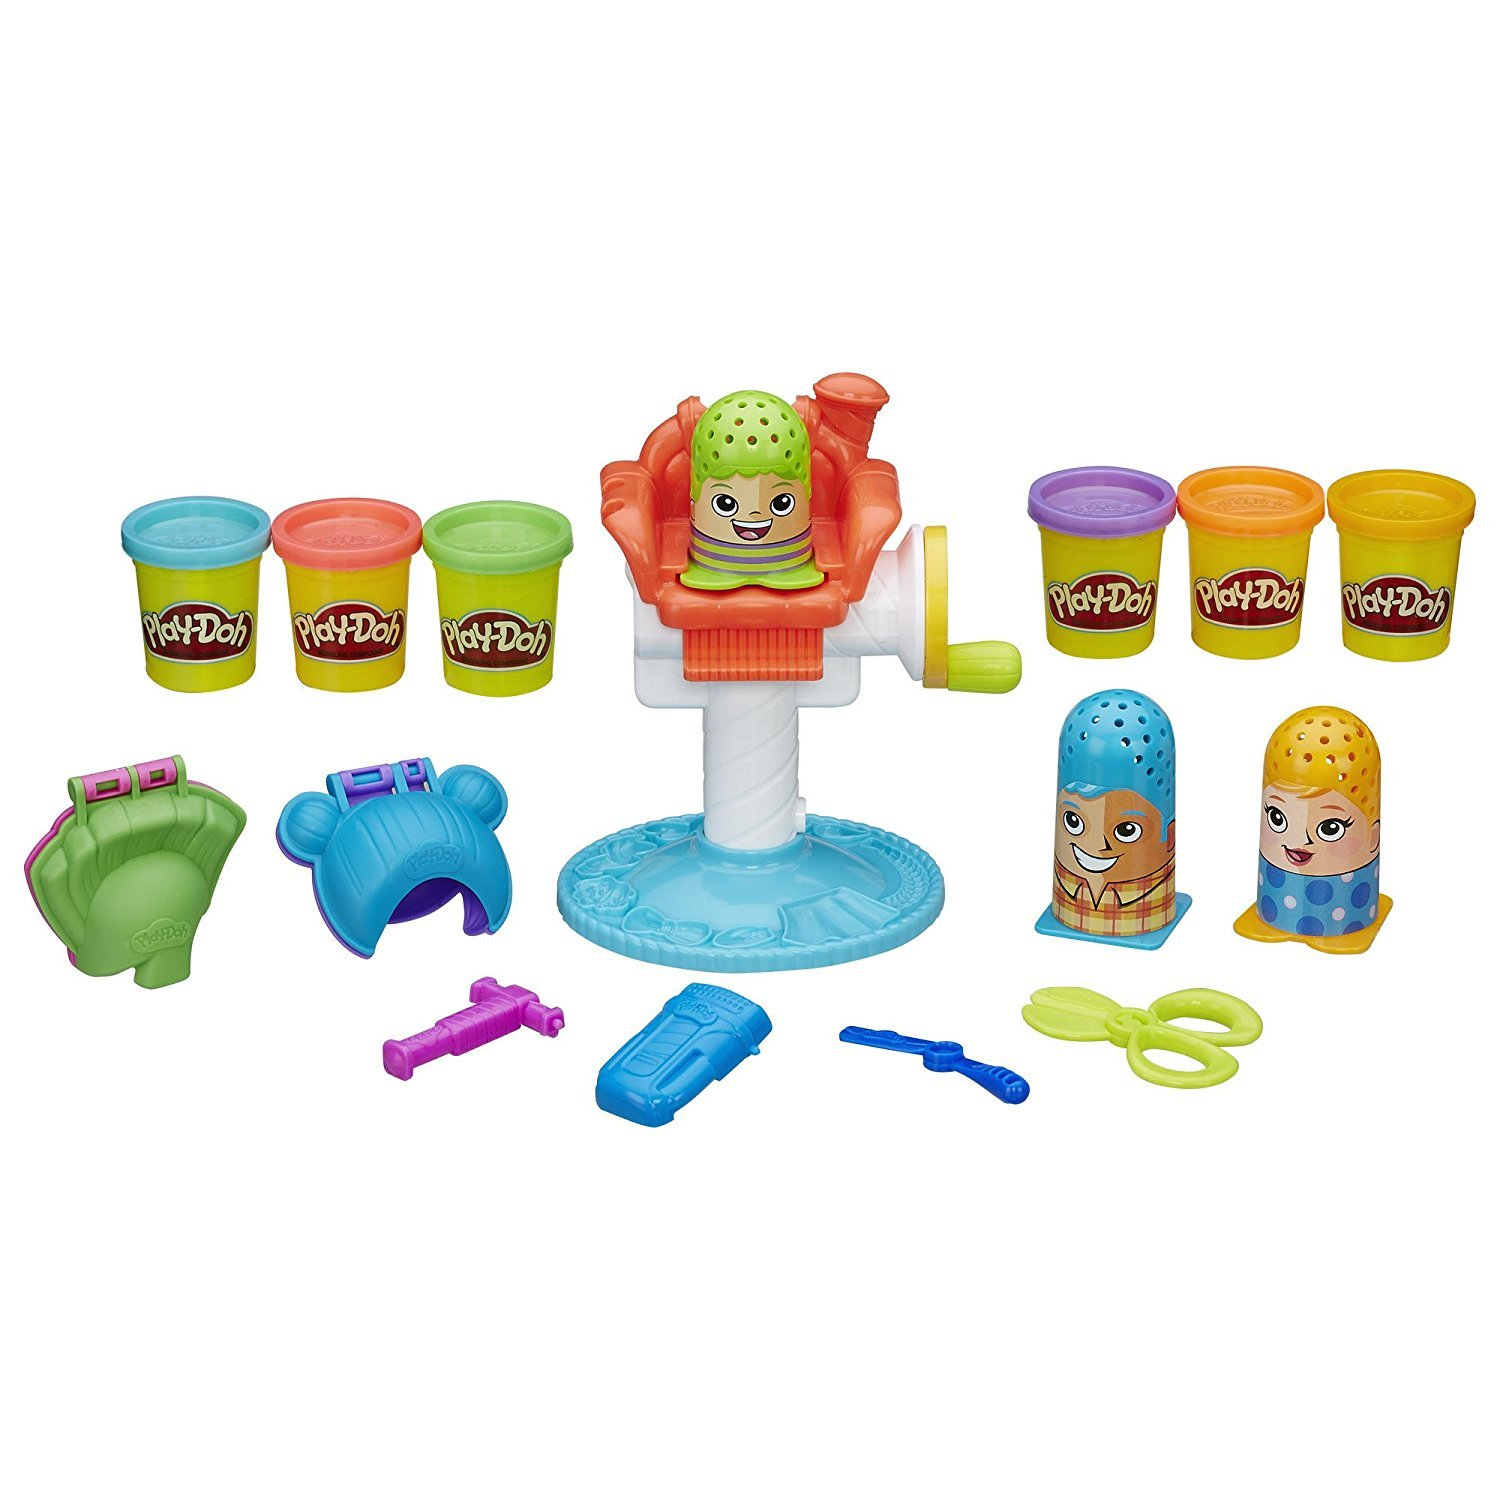 Play-Doh Crazy Cuts 60th Anniversary Retro Pack